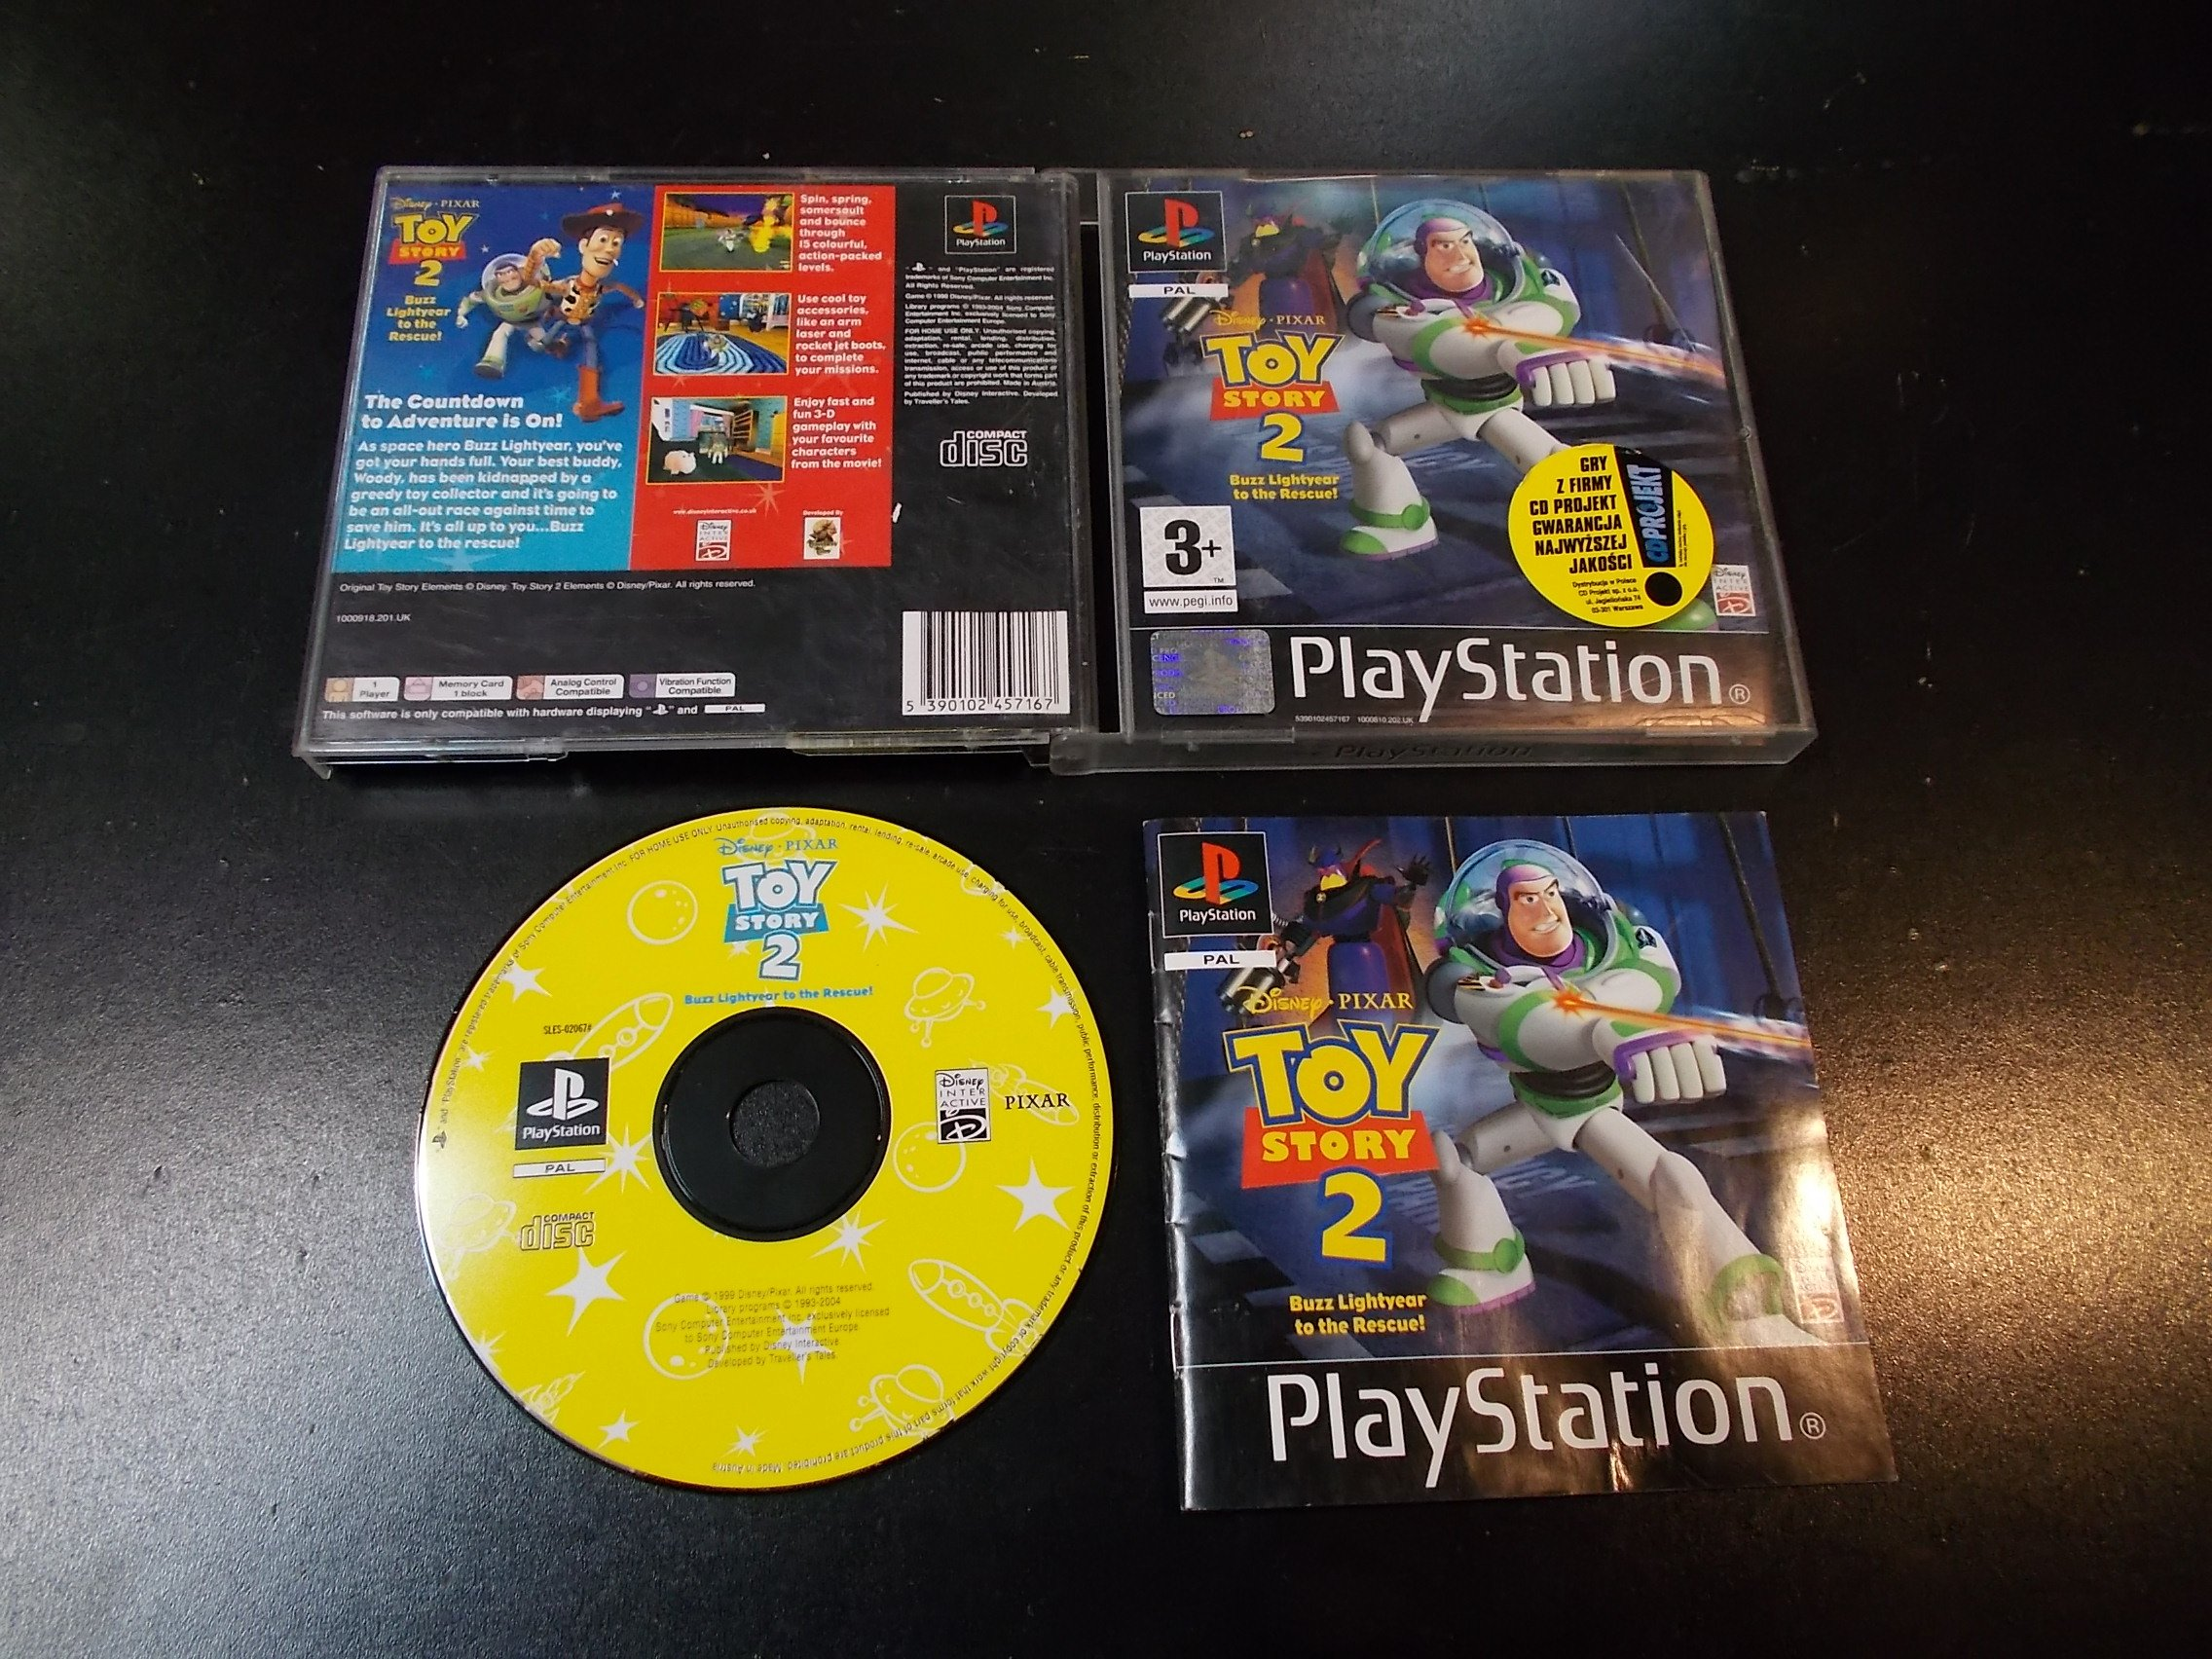 Disney Toy Story 2: Buzz Lightyear - GRA Psx Ps1 Sklep